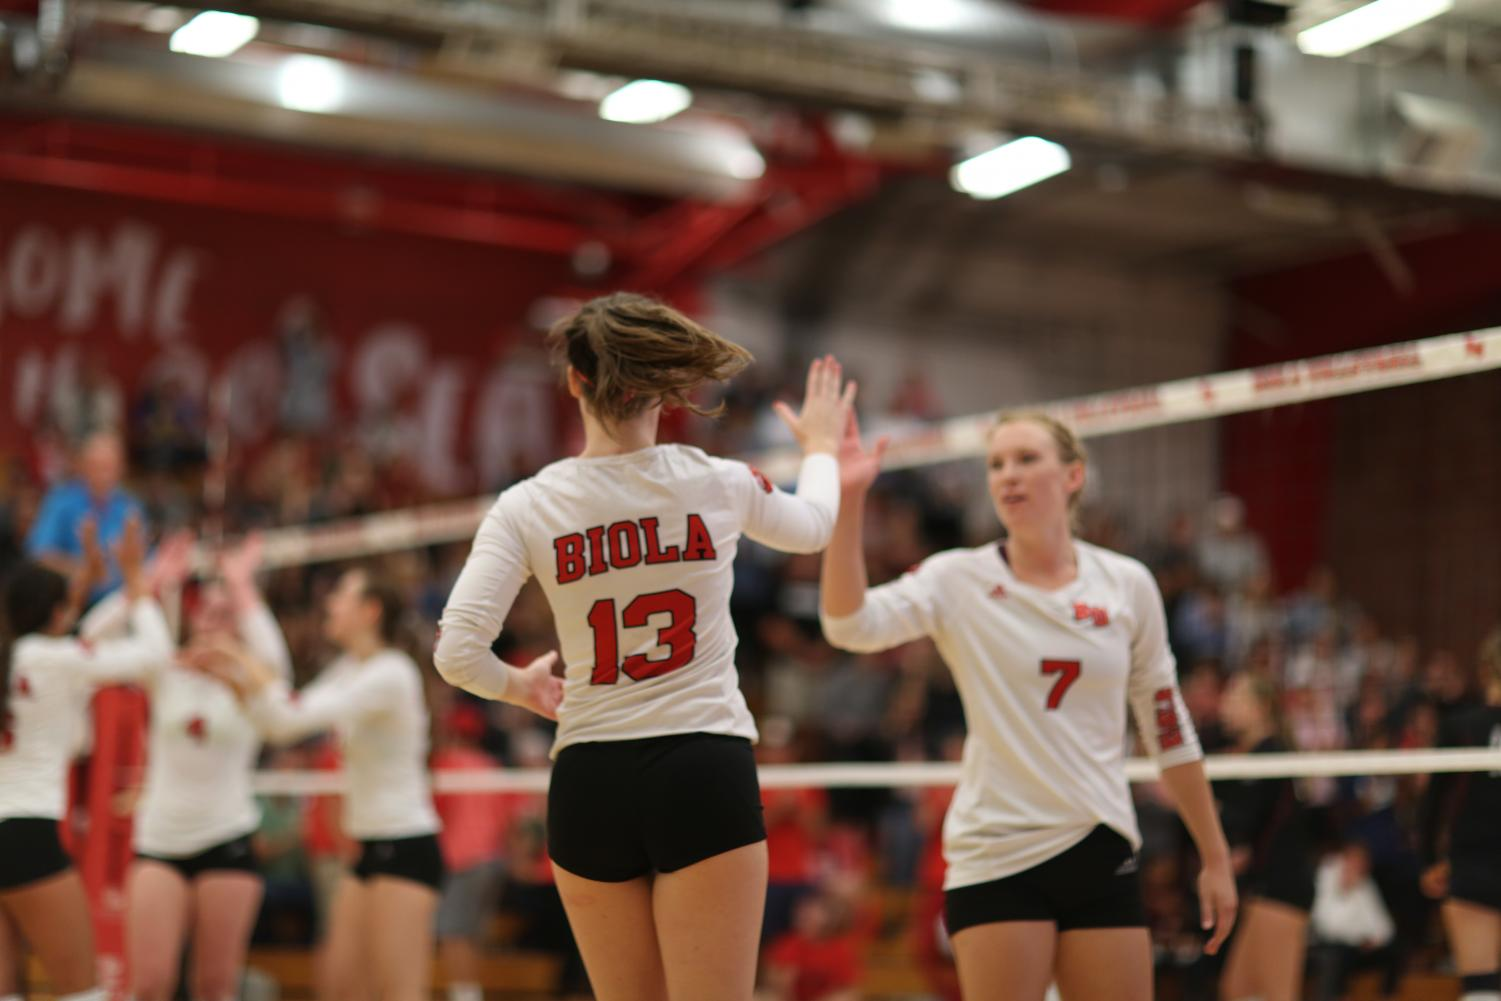 Junior libero Kaitlin O'Brien subs in for senior opposite hitter Karly Dantuma in this file photo from Oct. 3, 2018.